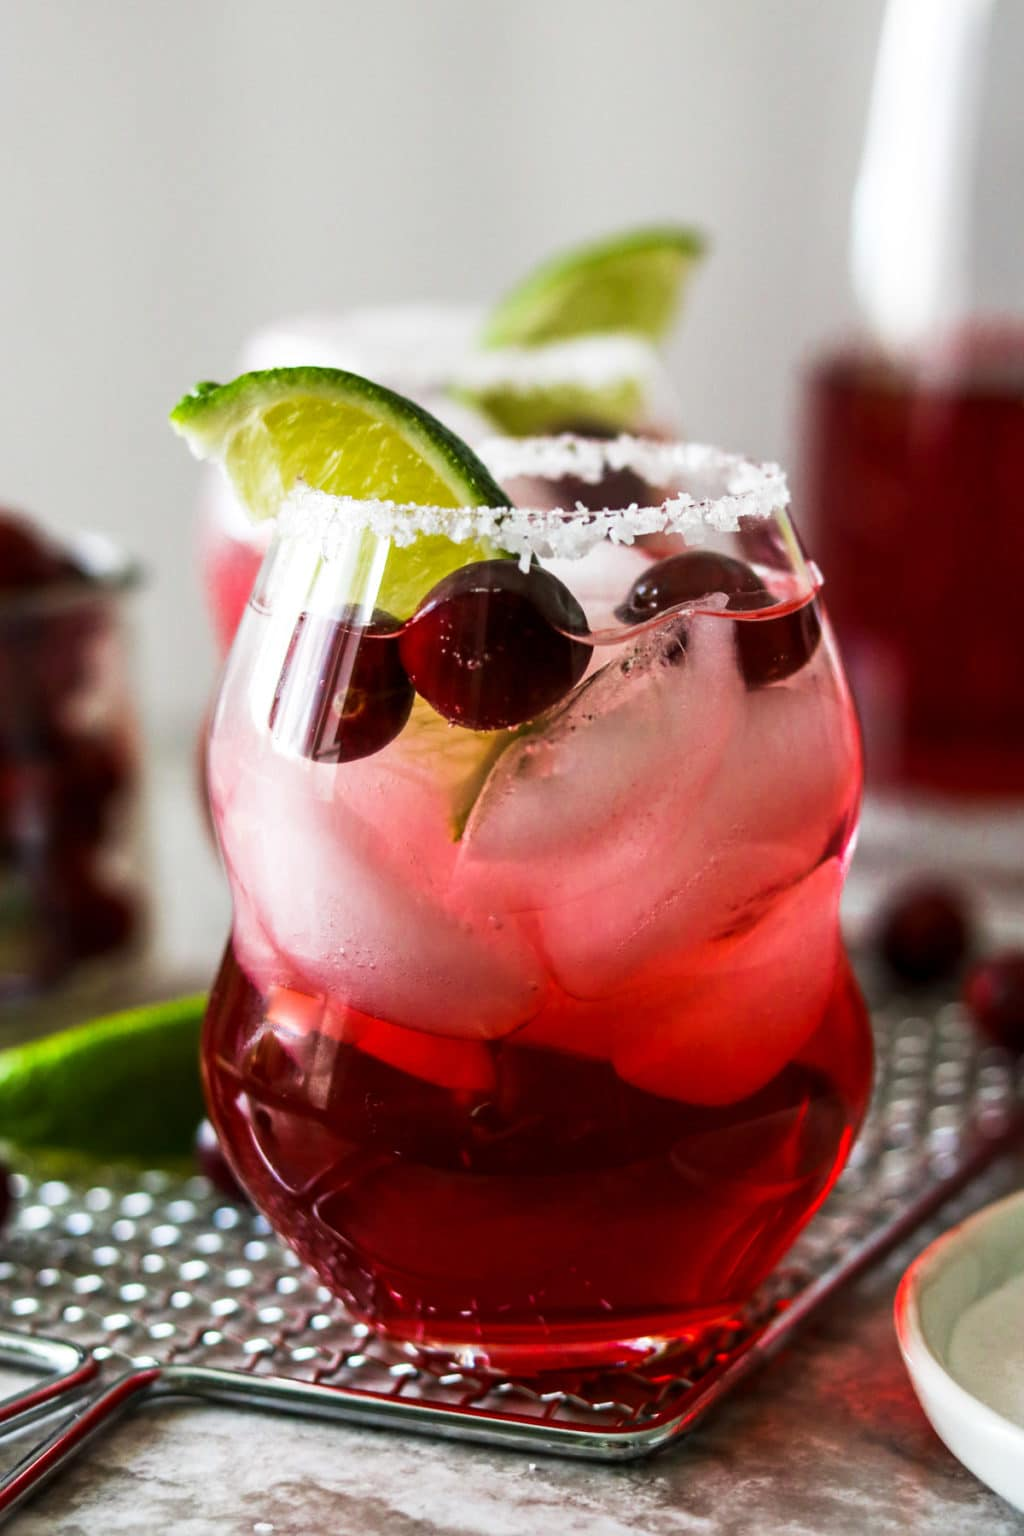 Cranberry Ginger Margarita in a glass garnished with salt, cranberries and limes